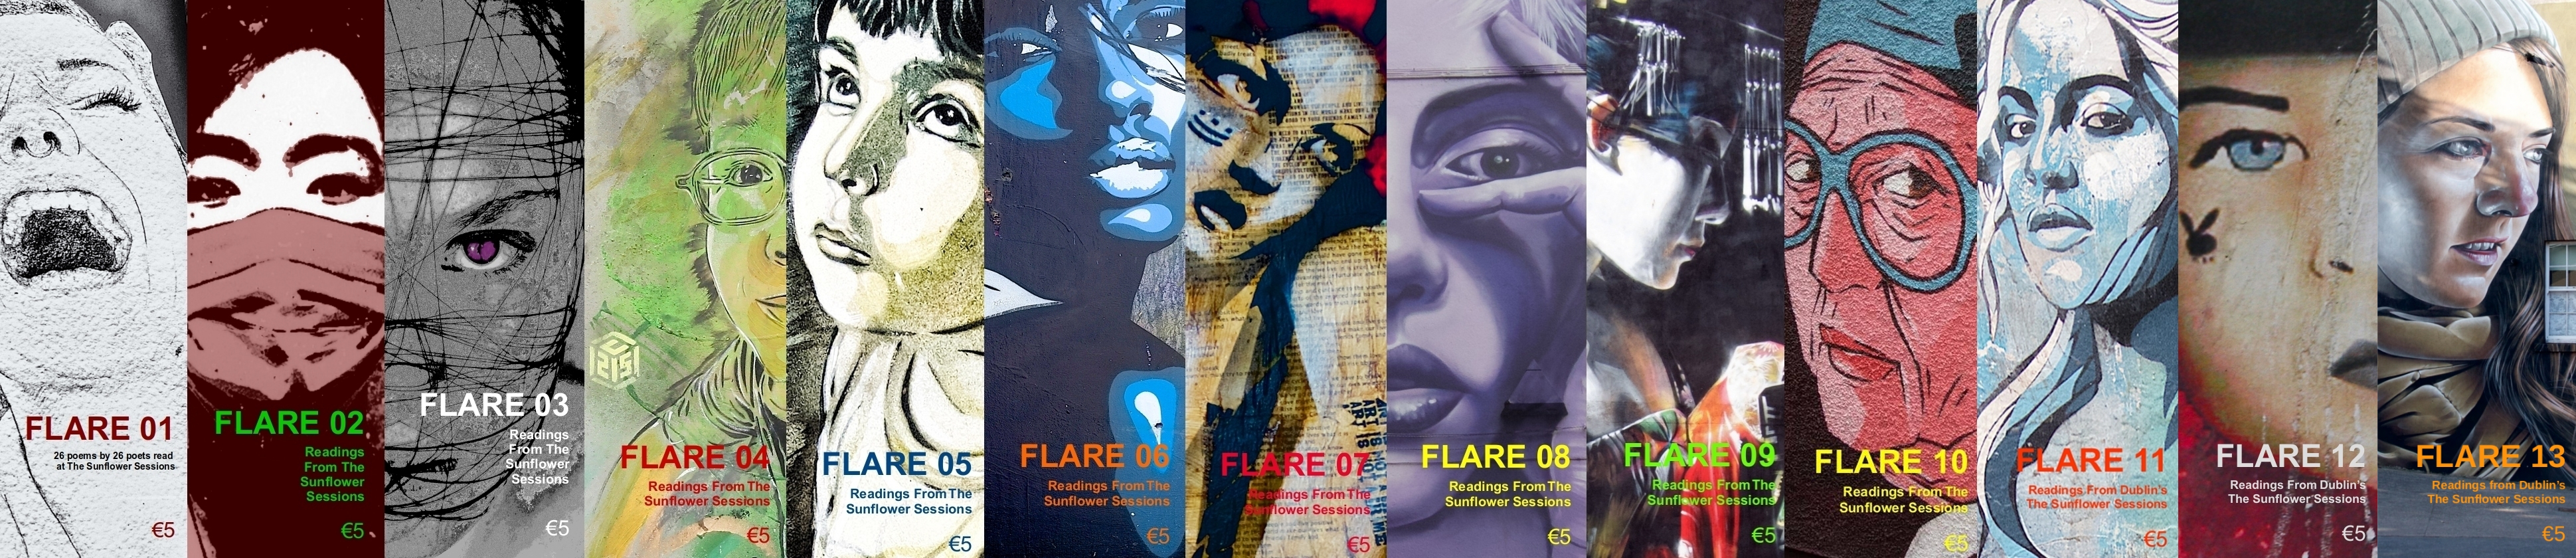 a composite photo of the first twelve issues of FLARE